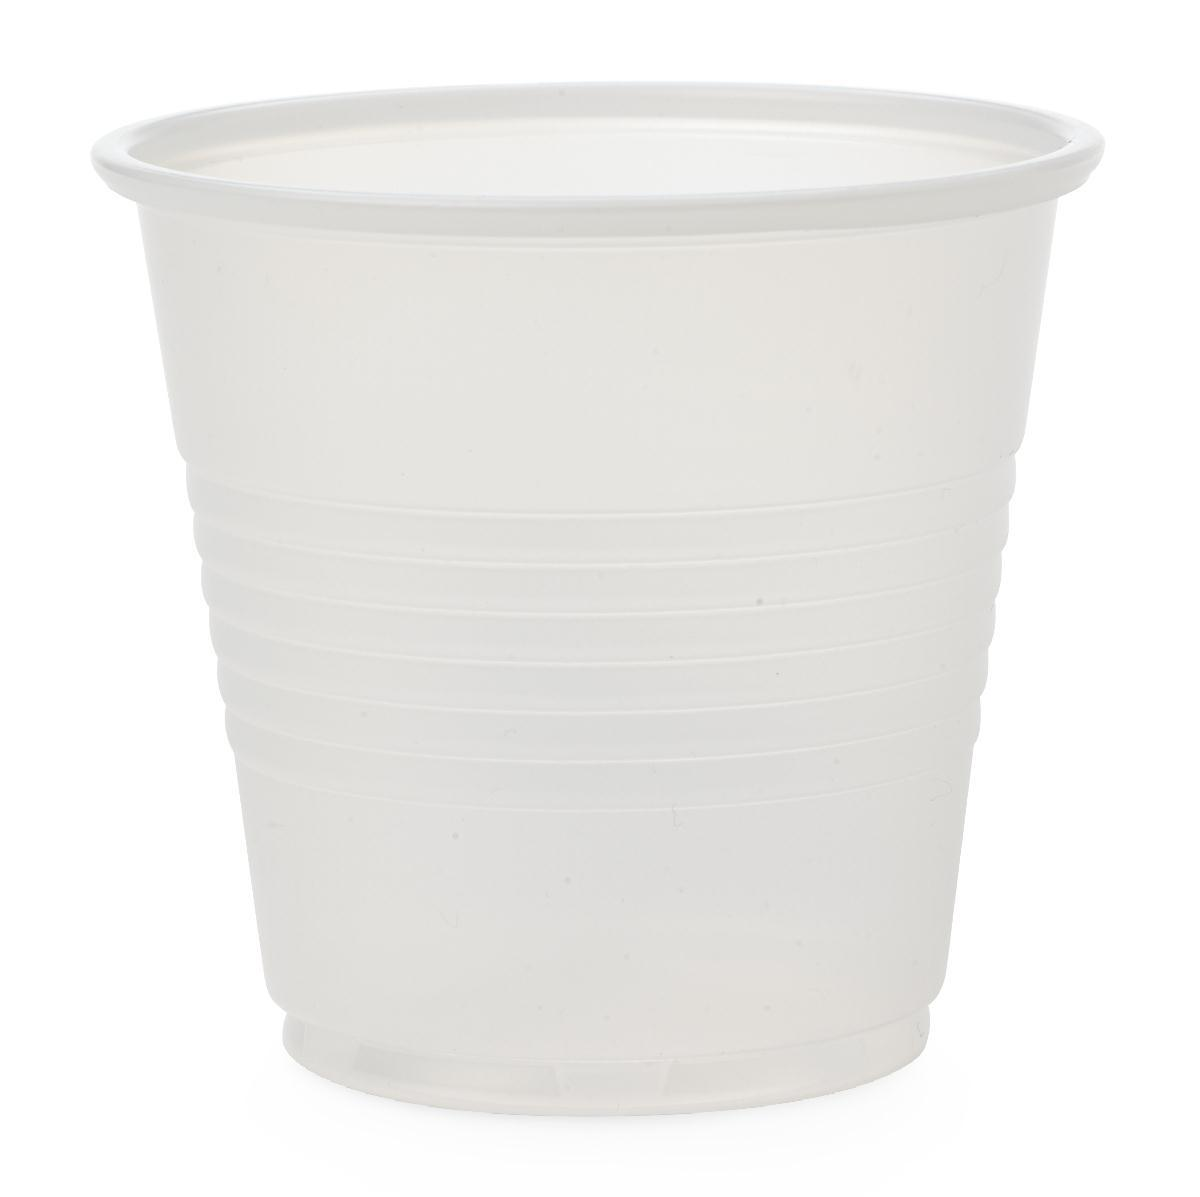 Nursing Supplies & Patient Care Food Service Drinking Cups & Glasses Cups & Glasses - Non030035 - Cup Plastic 3.5 Oz Translucent NON030035